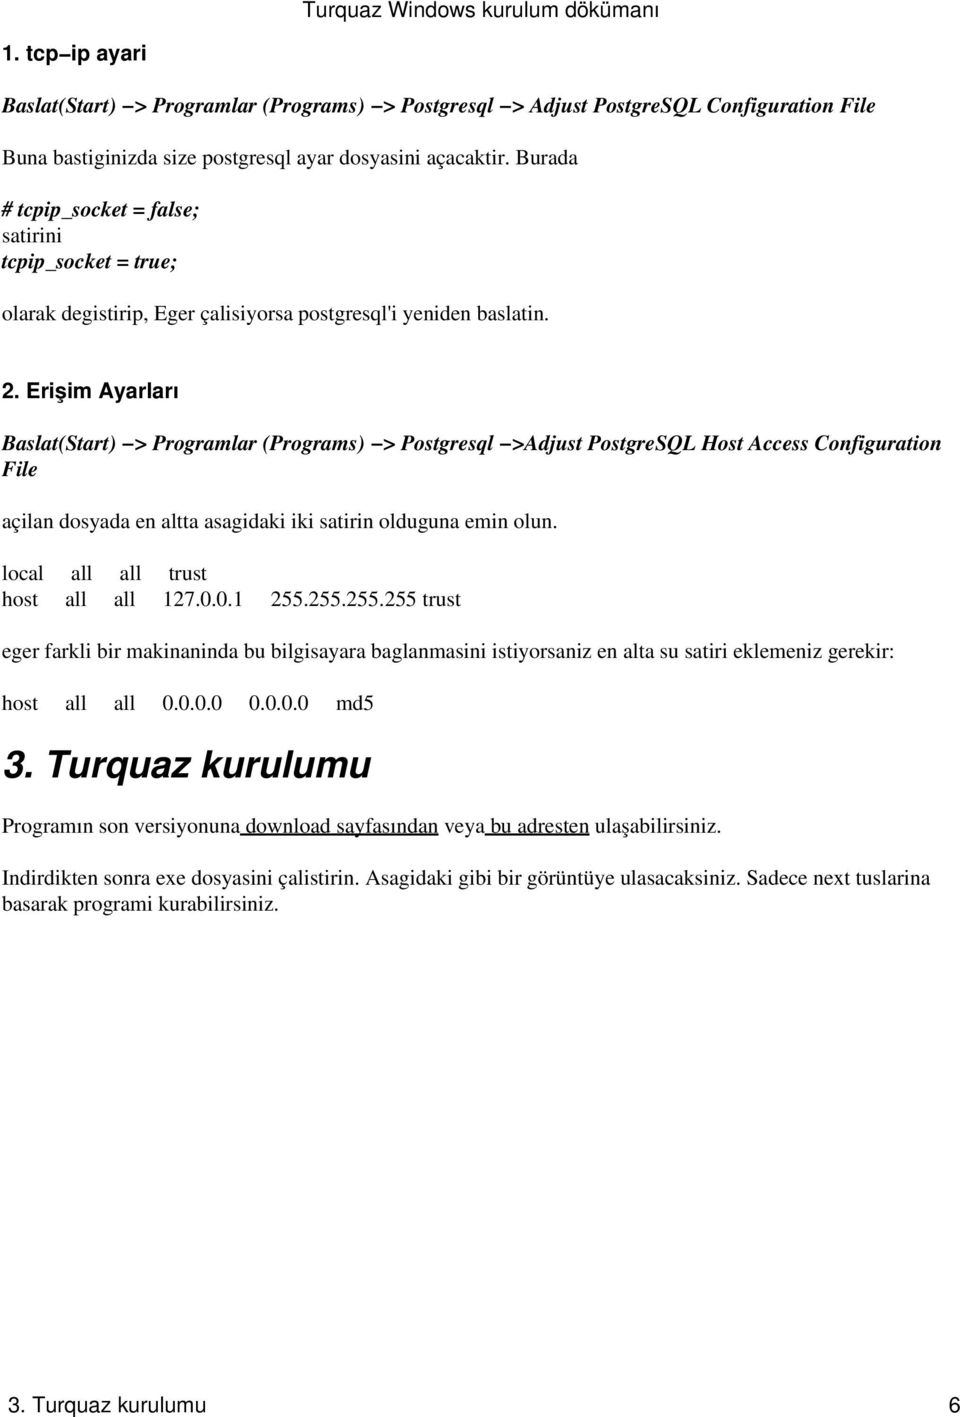 Erişim Ayarları Baslat(Start) > Programlar (Programs) > Postgresql >Adjust PostgreSQL Host Access Configuration File açilan dosyada en altta asagidaki iki satirin olduguna emin olun.